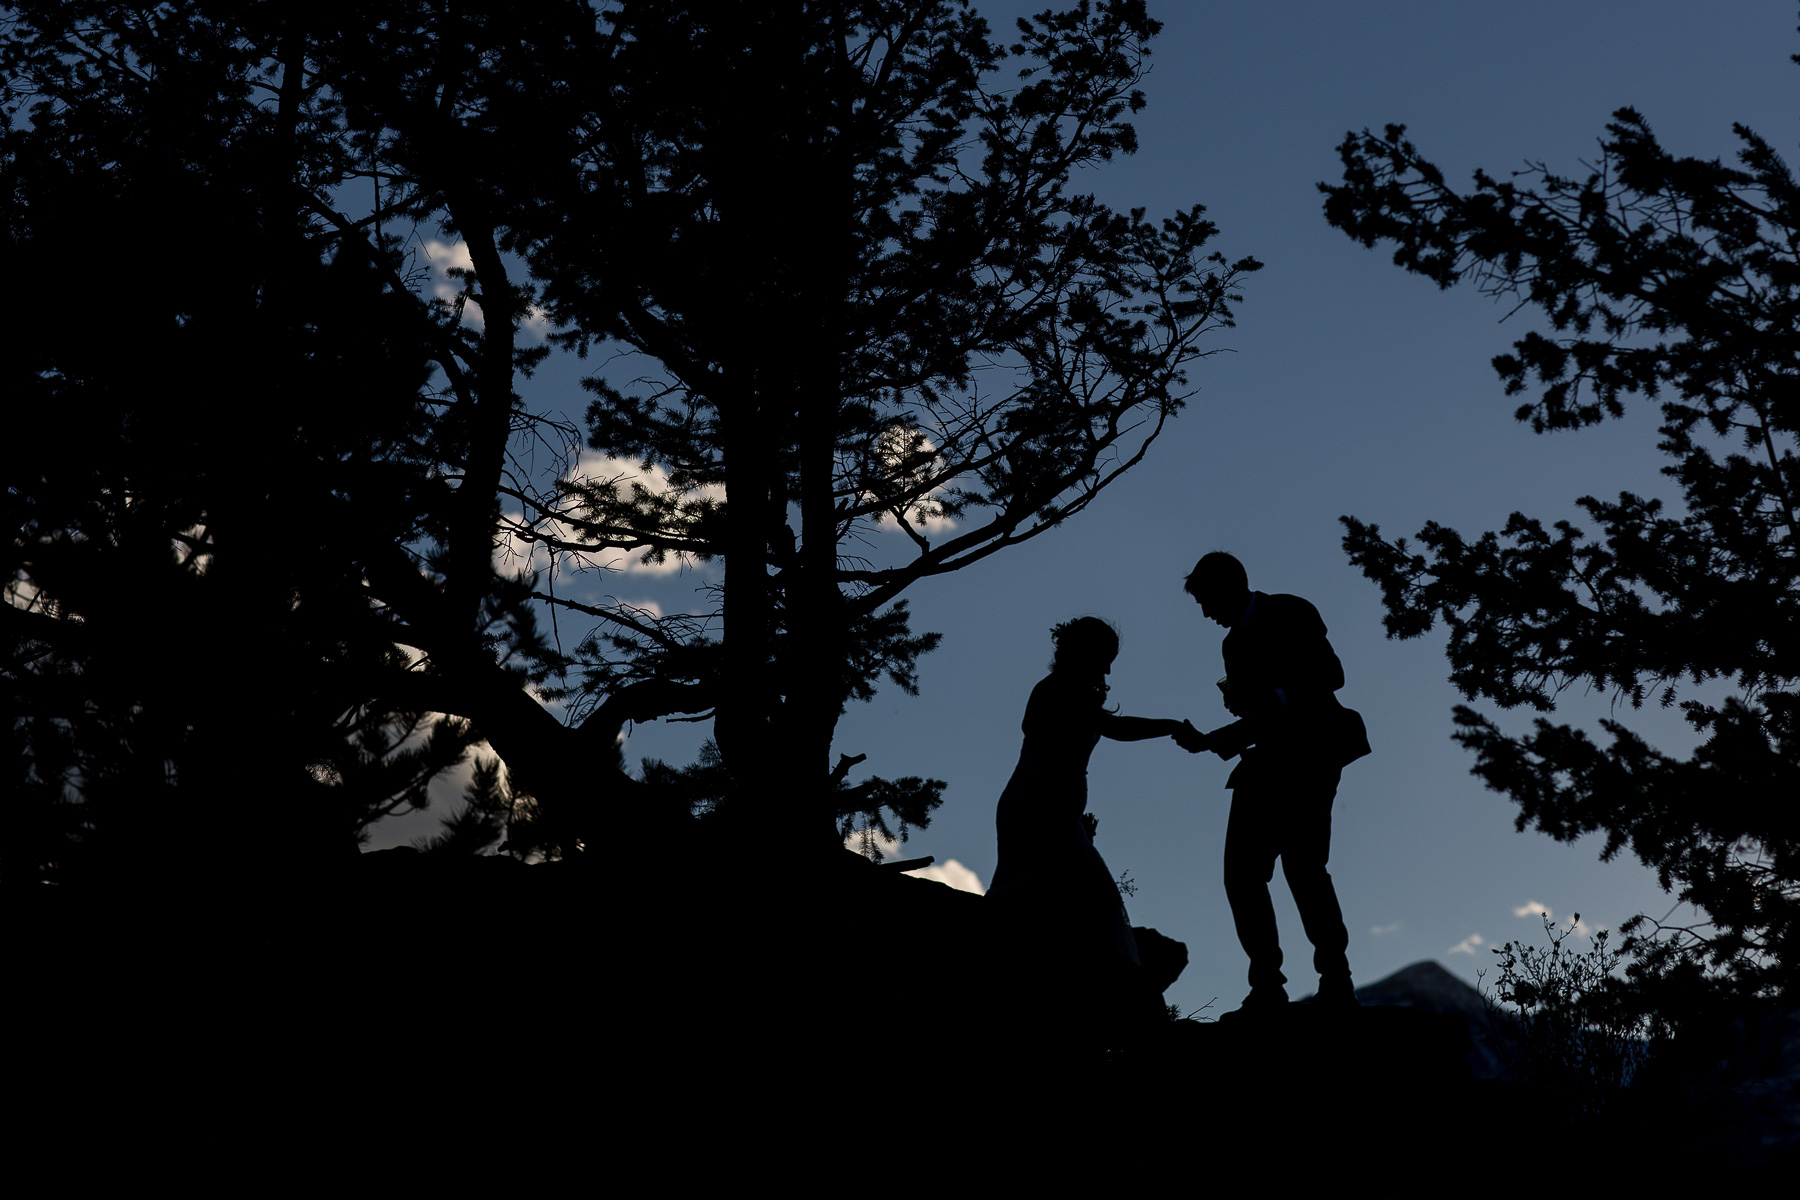 a silhouette of a bride and groom at sunset on walking on rocks